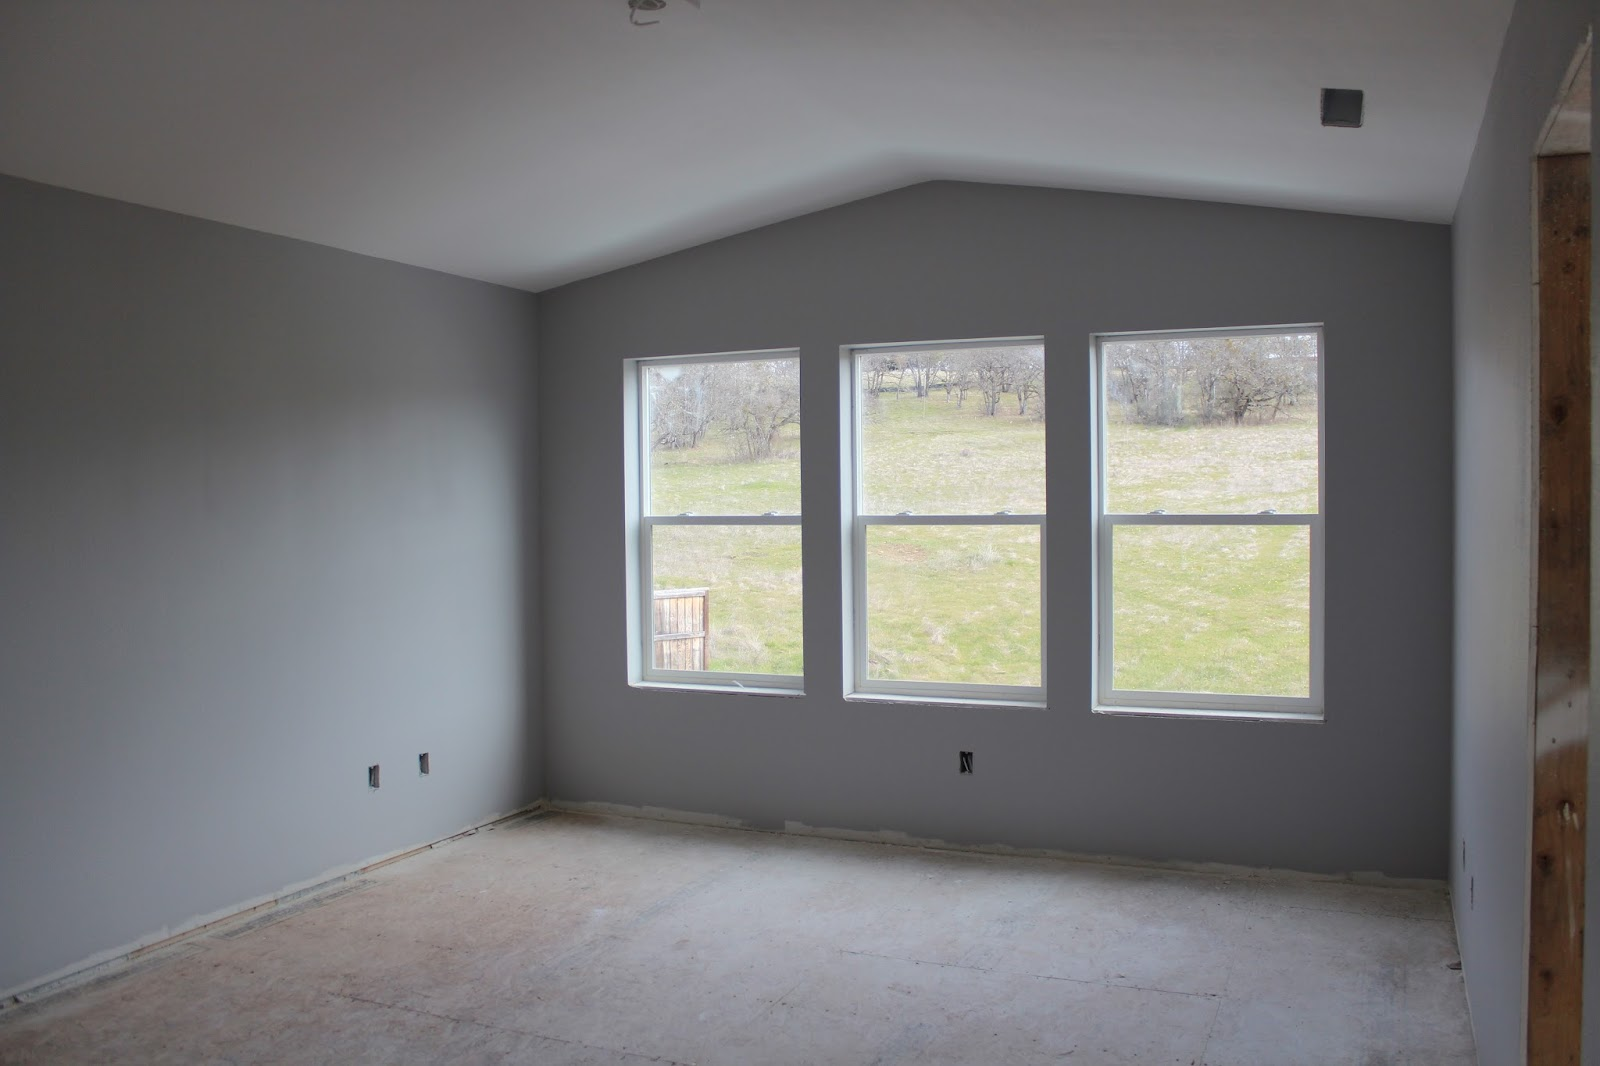 Southern Oregon Dream: We're FINISHED painting the interior!!!